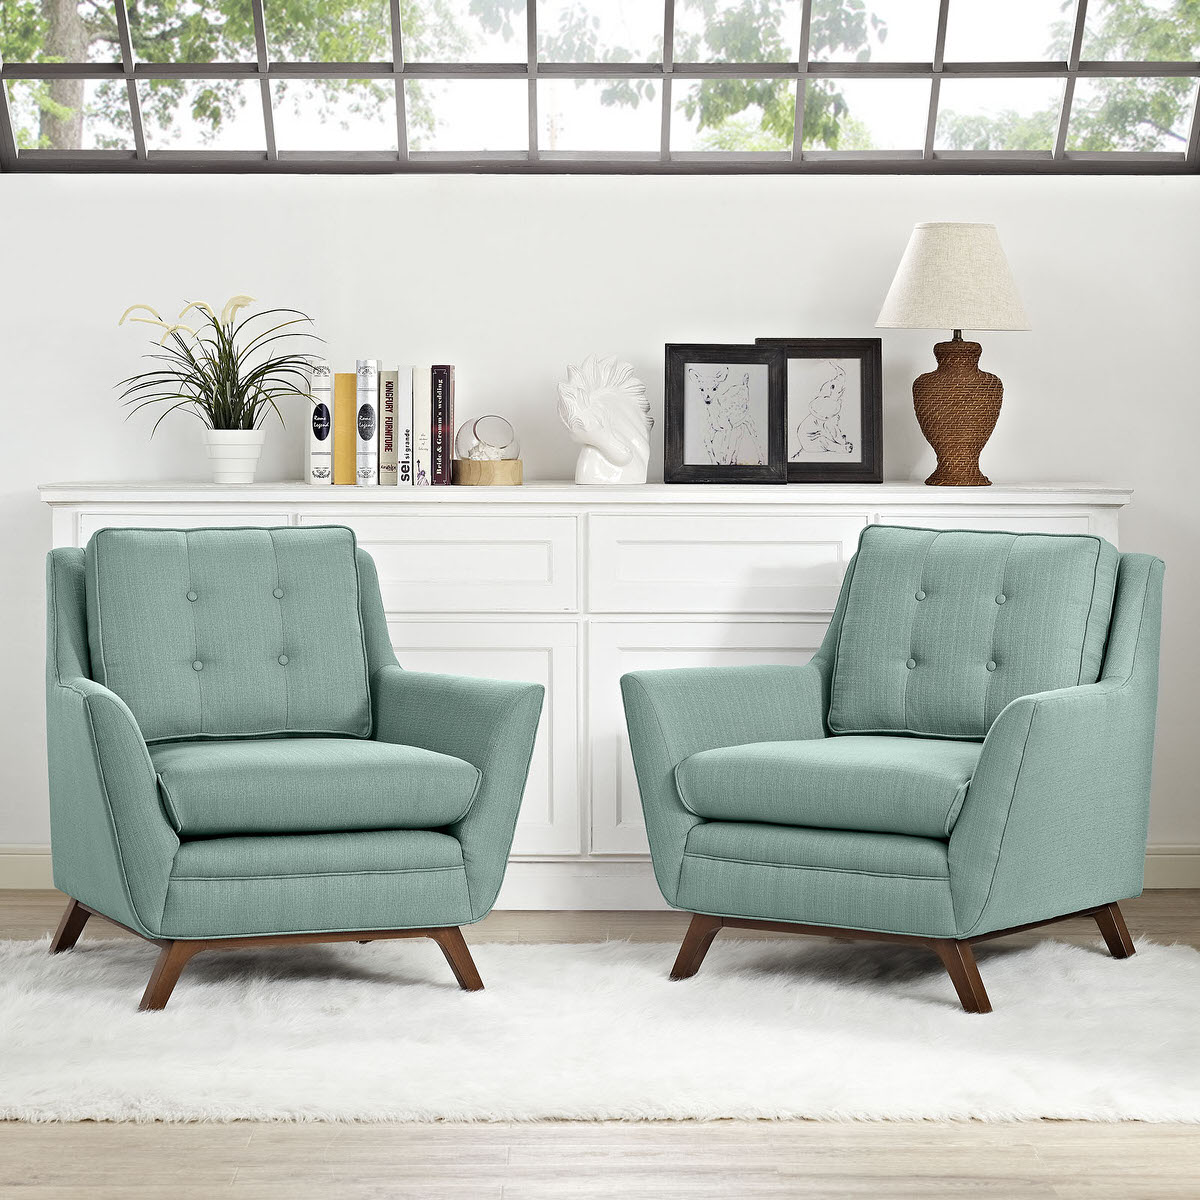 Beguile 2 Piece Upholstered Fabric Living Room Set Laguna by Modway